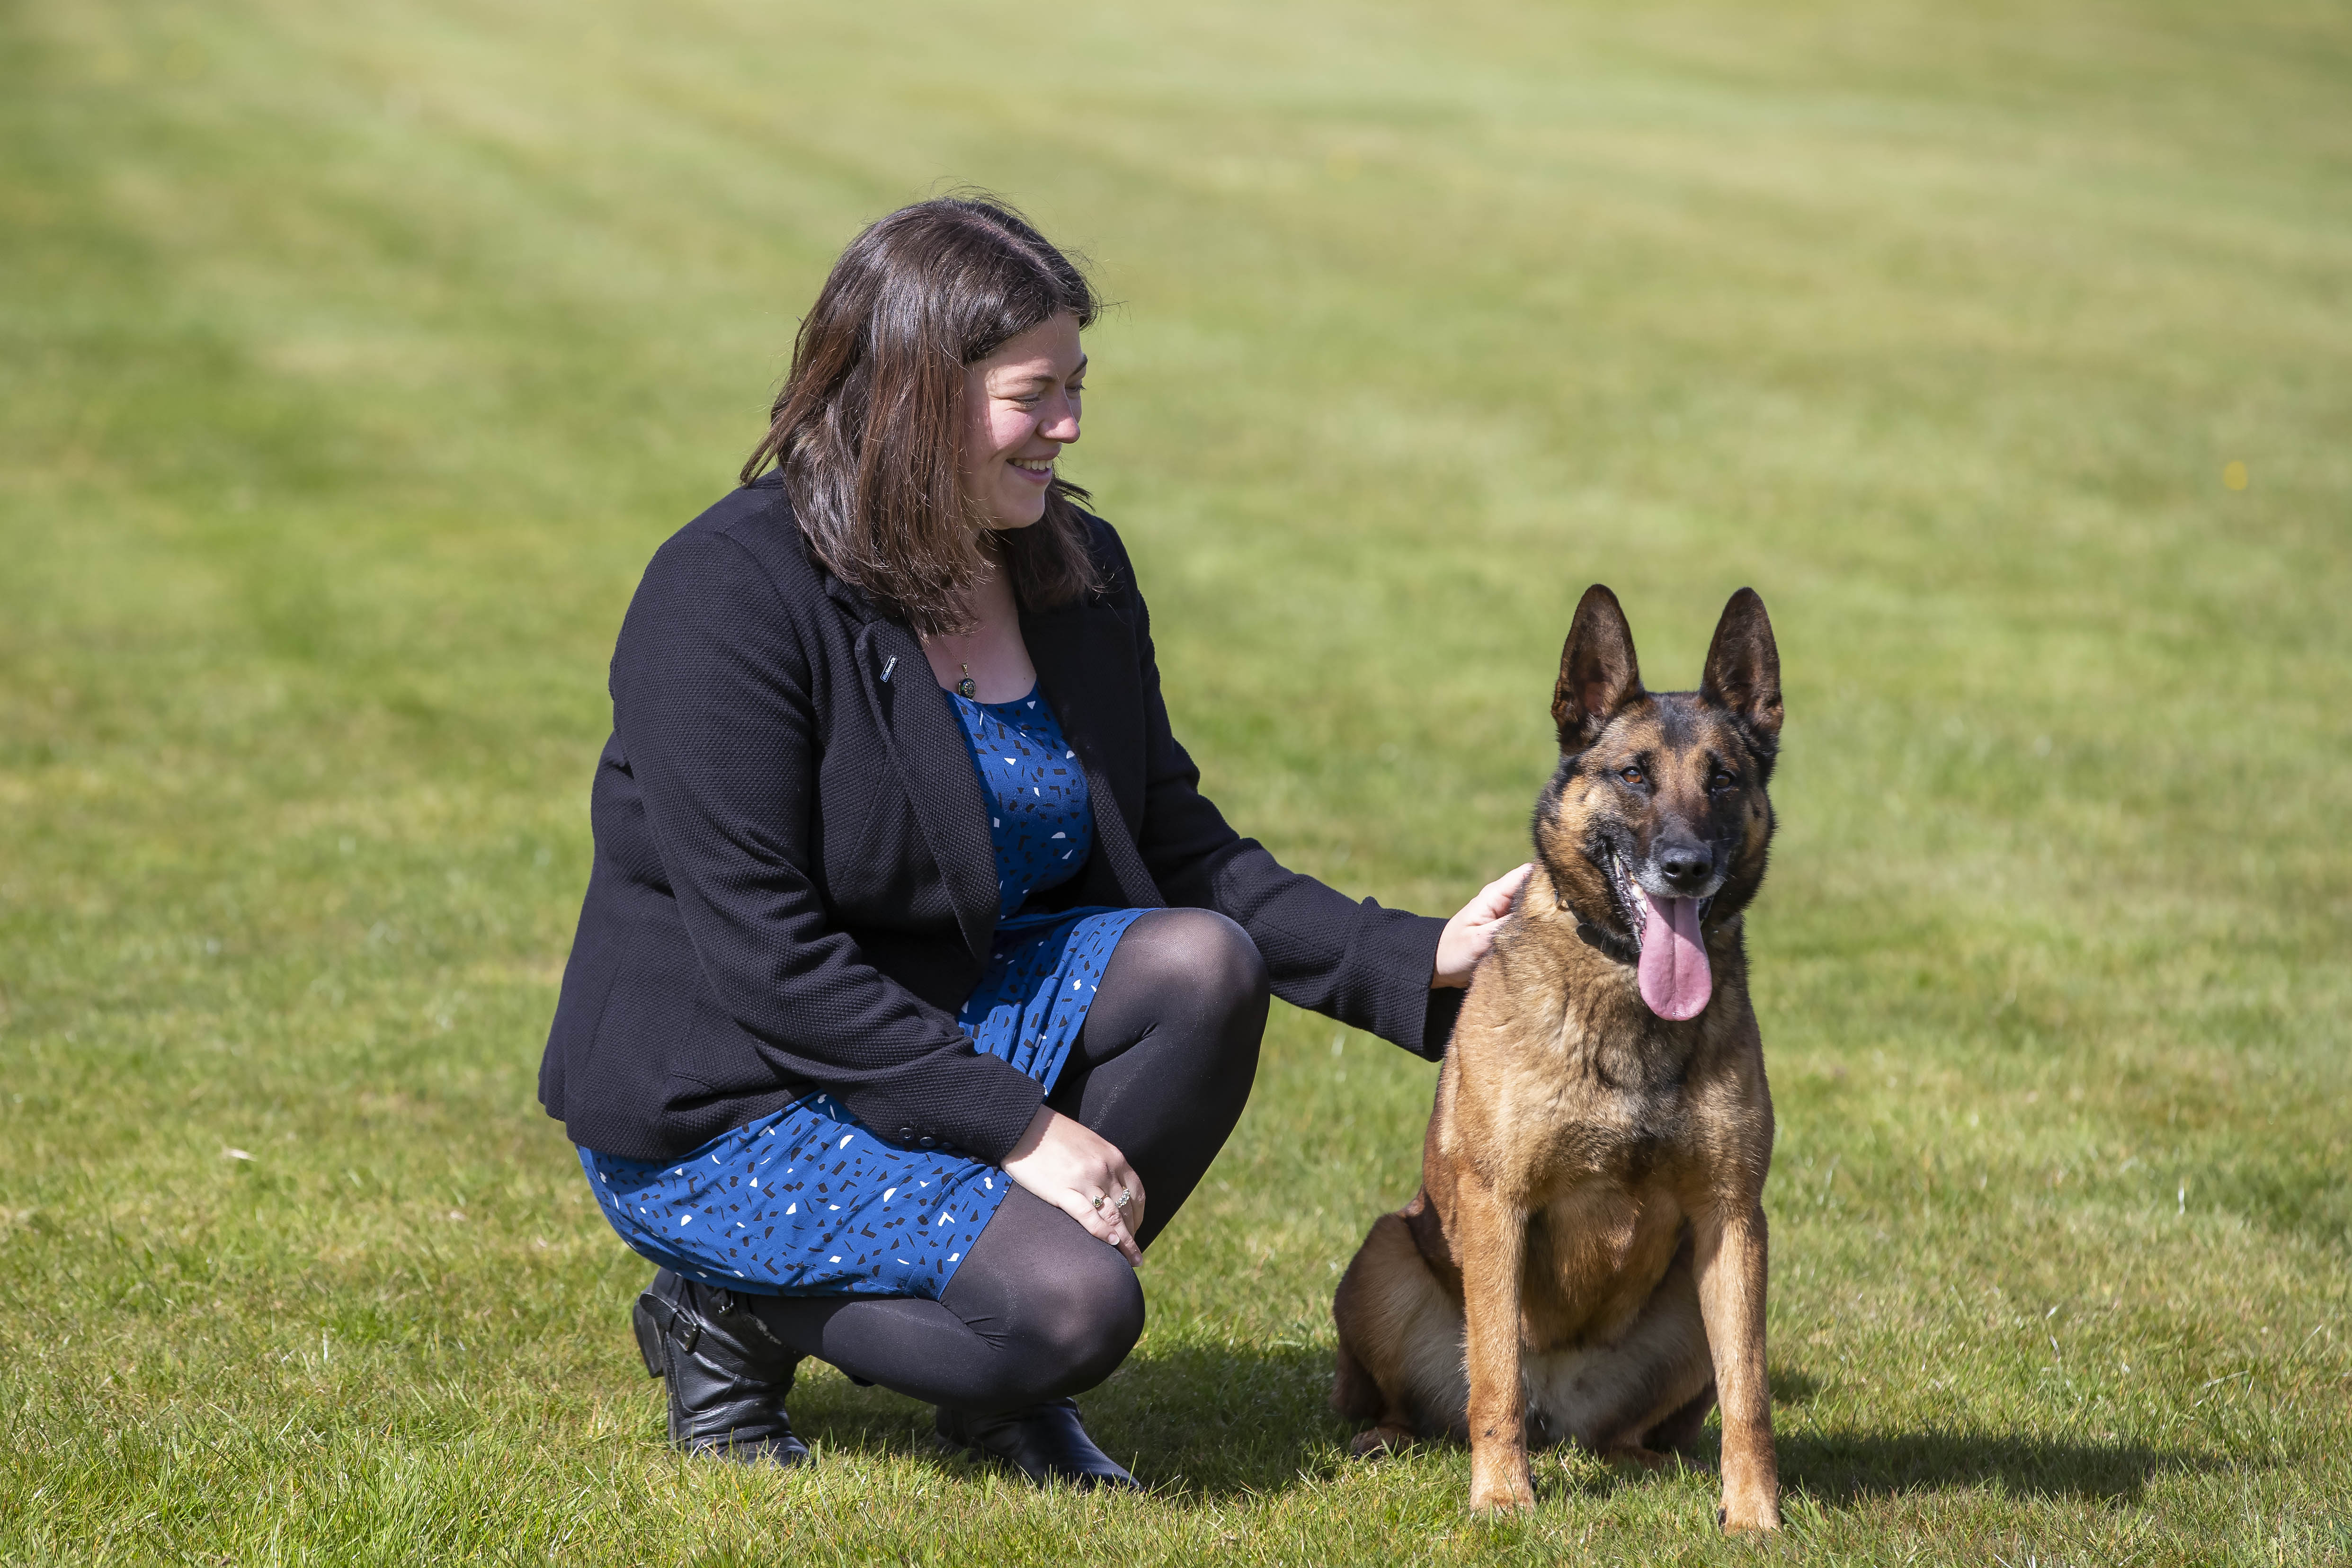 Police Commissioner welcomes new law on pet abductions